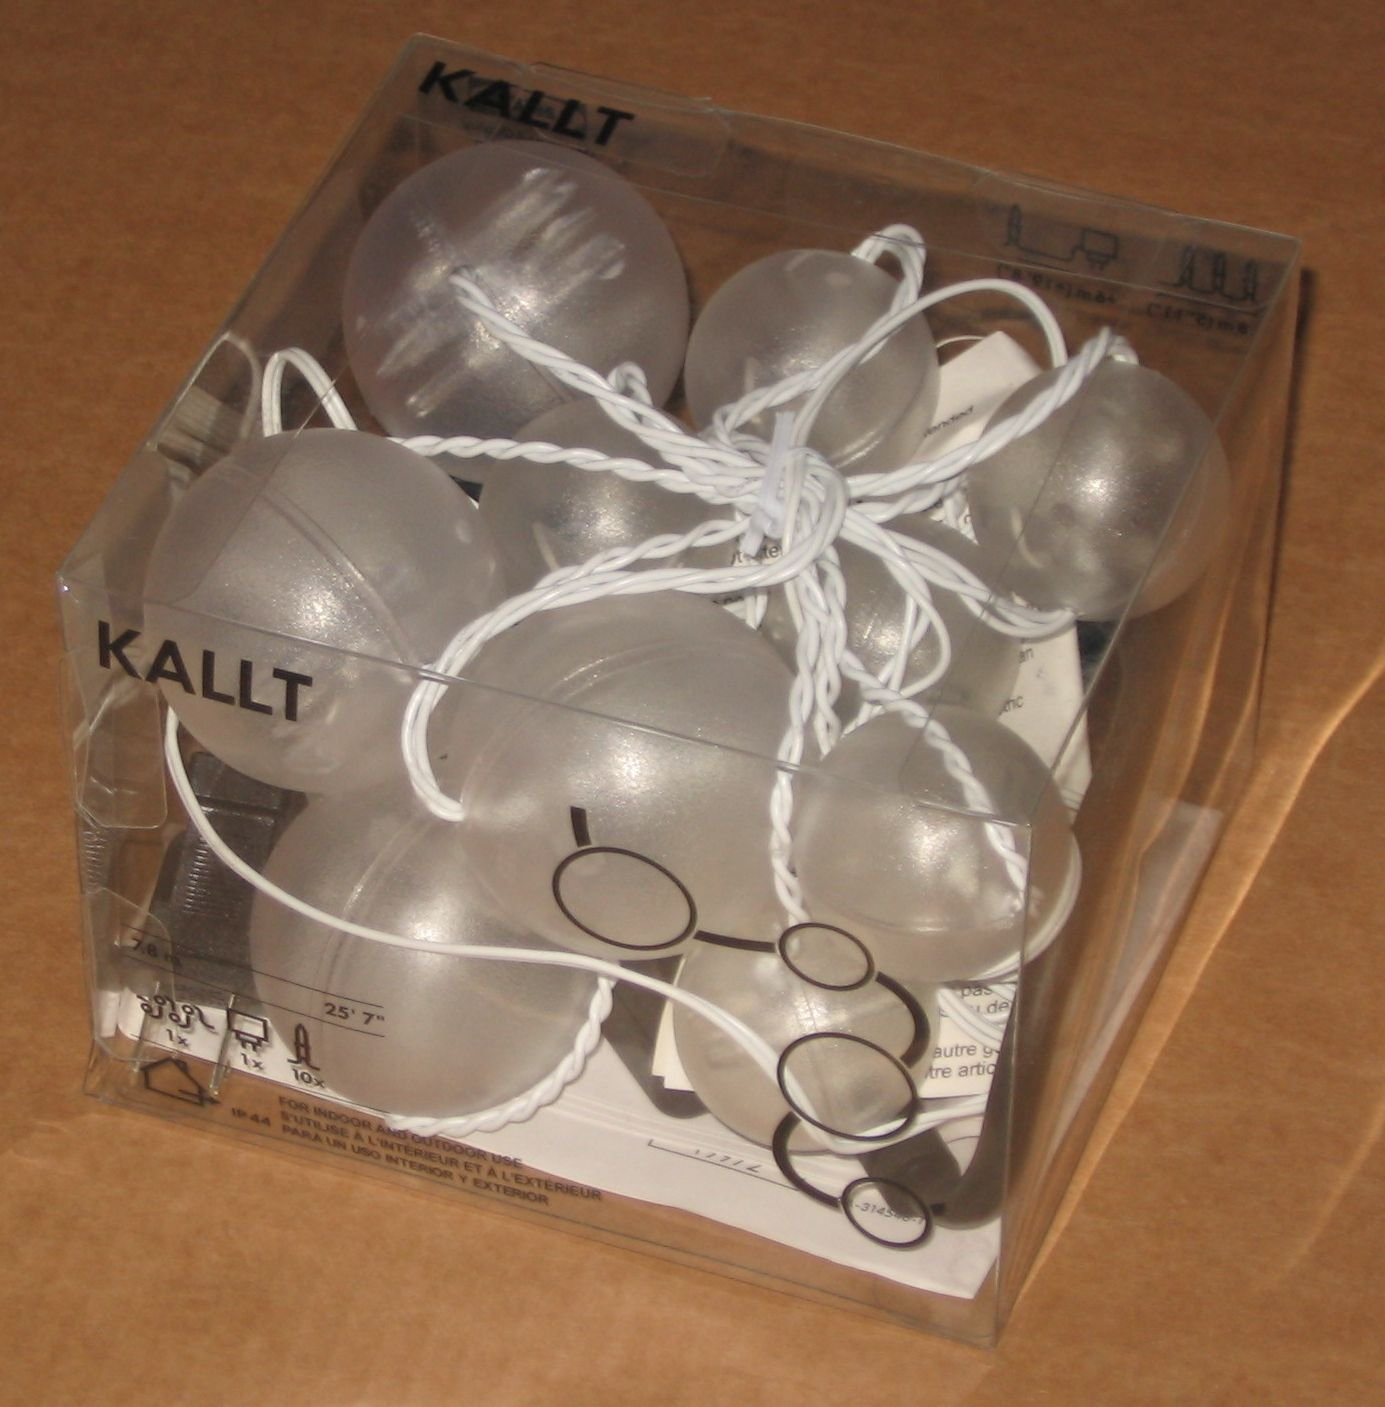 IKEA KALLT LED 10 Snowball LIGHT CHAIN Indoor OUTDOOR ...